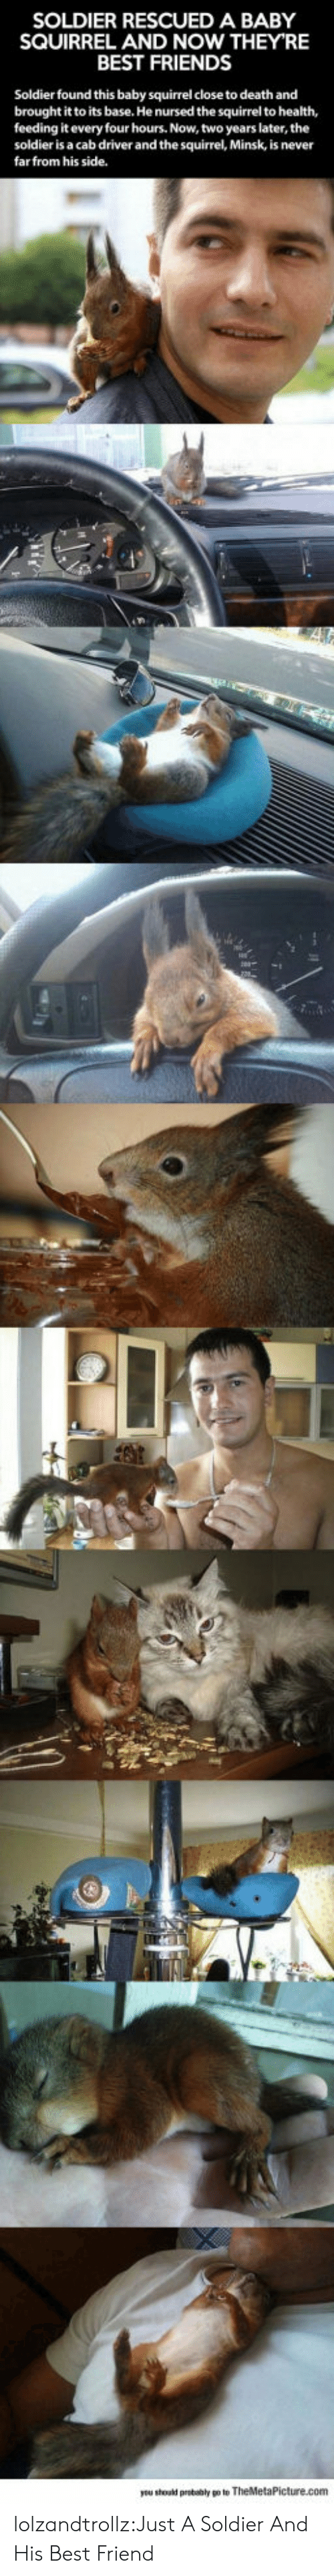 cab: SOLDIER RESCUED A BABY  SQUIRREL AND NOW THEY'RE  BEST FRIENDS  Soldier found this baby squirrel close to death and  brought it to its base. He nursed the squirrel to health,  feeding it every four hours. Now, two years later, the  soldier is a cab driver and the squirrel, Minsk, is never  farfrom his side. lolzandtrollz:Just A Soldier And His Best Friend